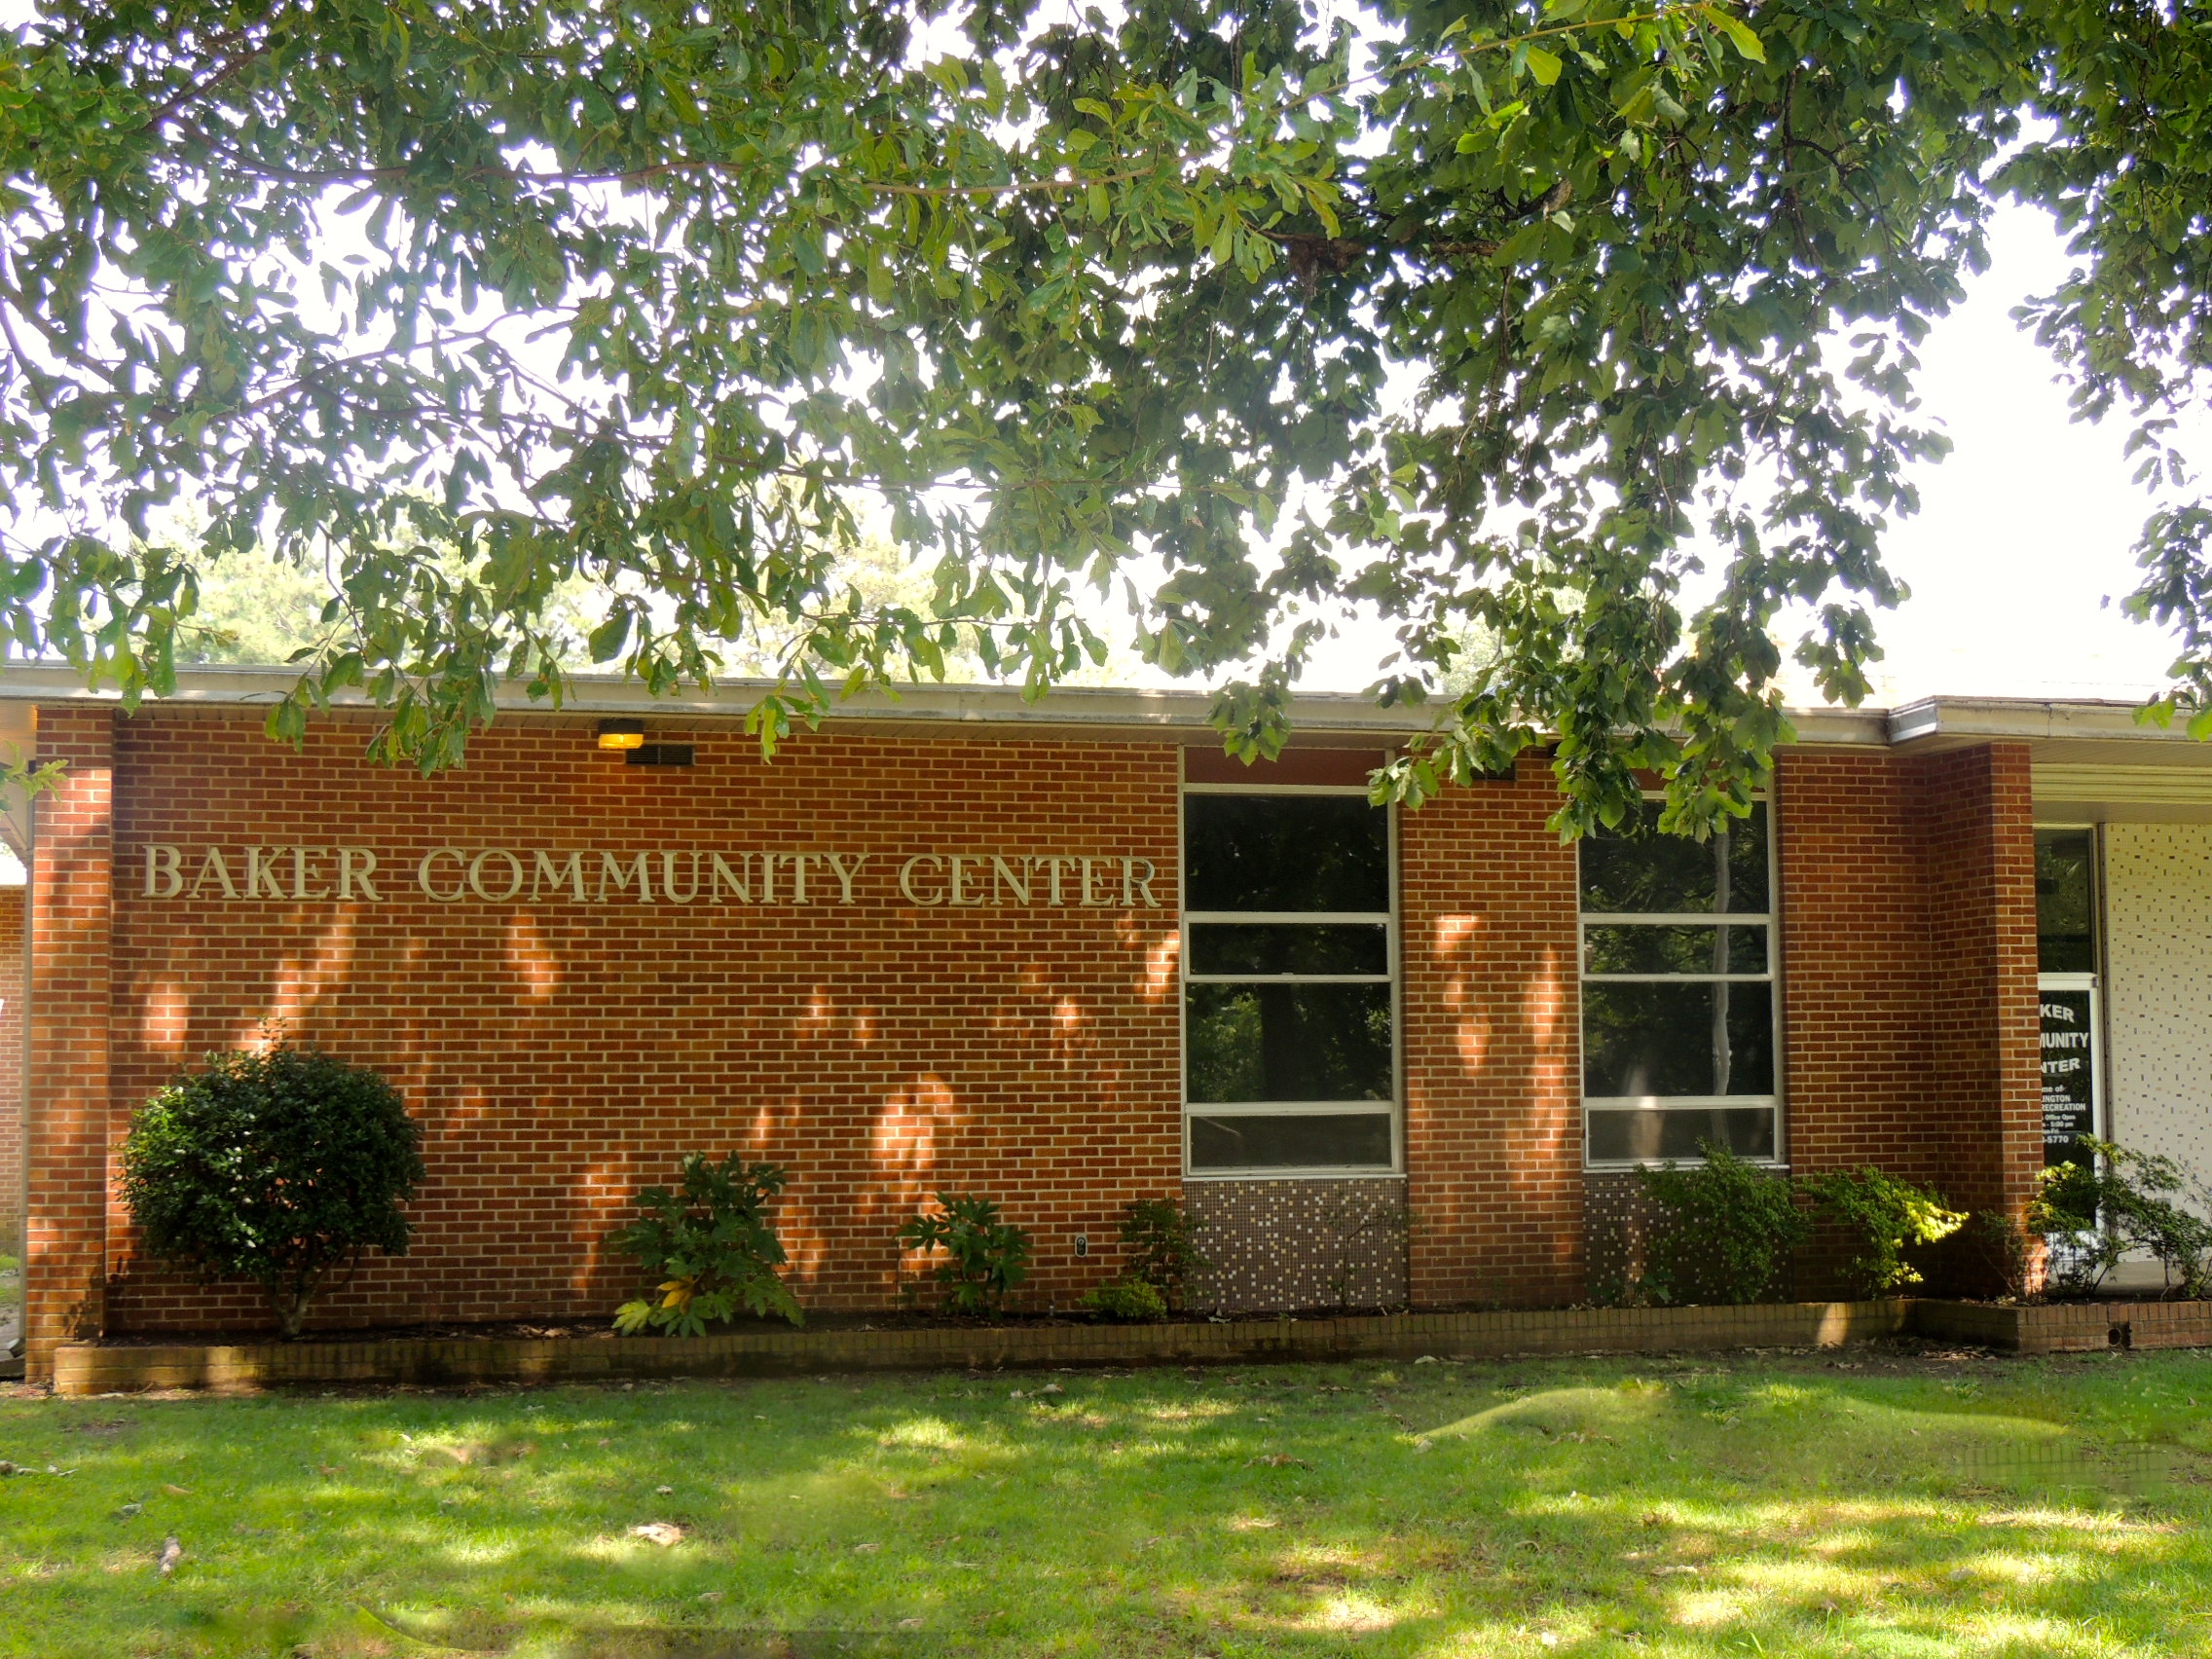 Baker Community Center 2